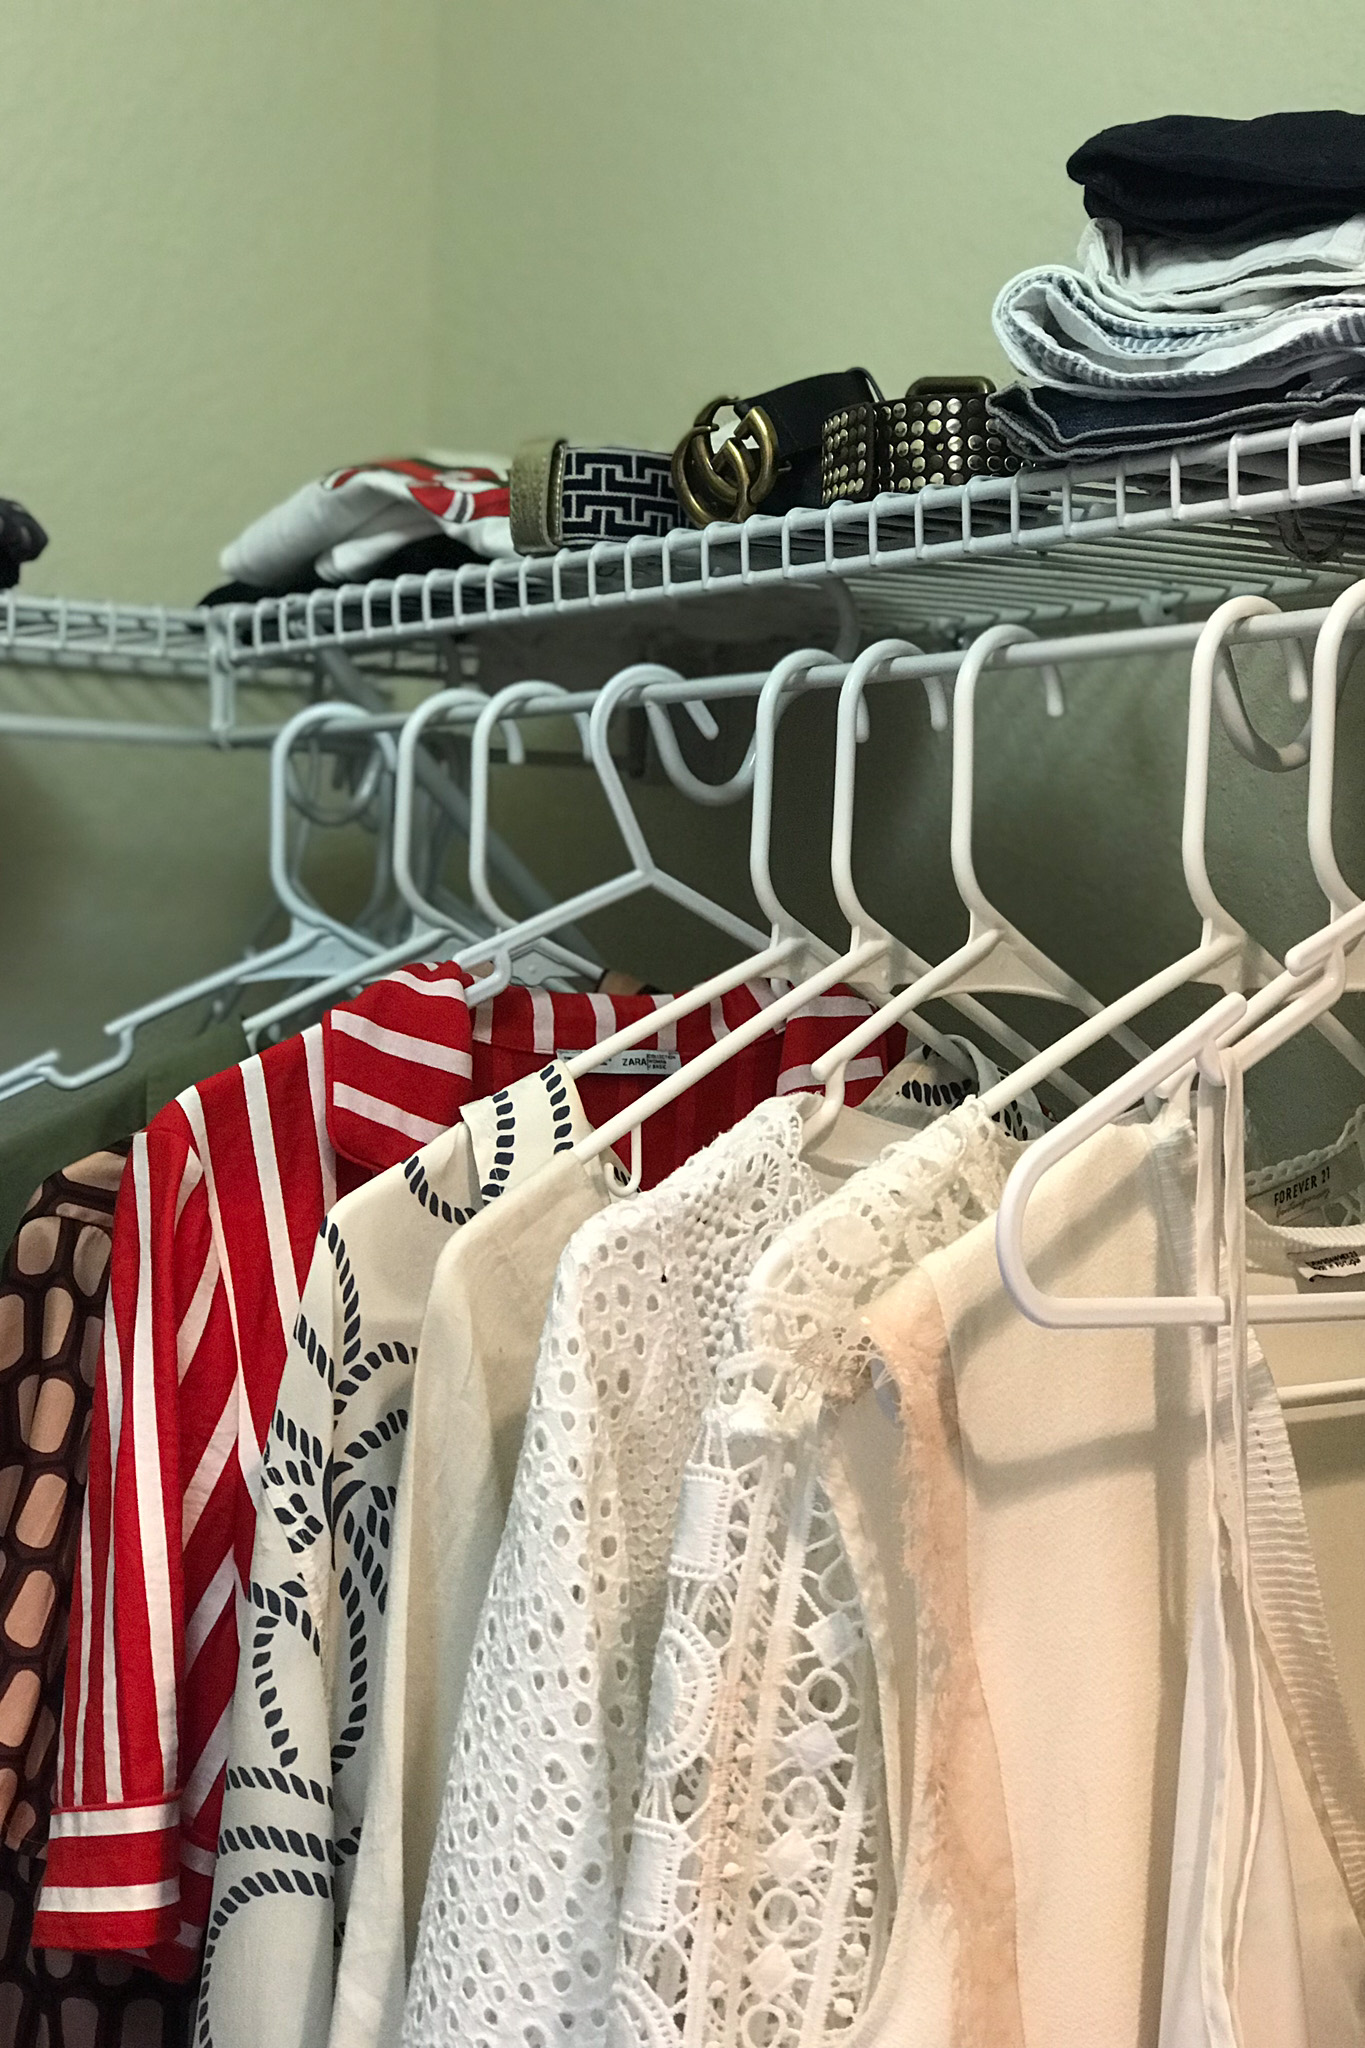 Walk in closet filled with hanging clothes ina variety of colours and styles